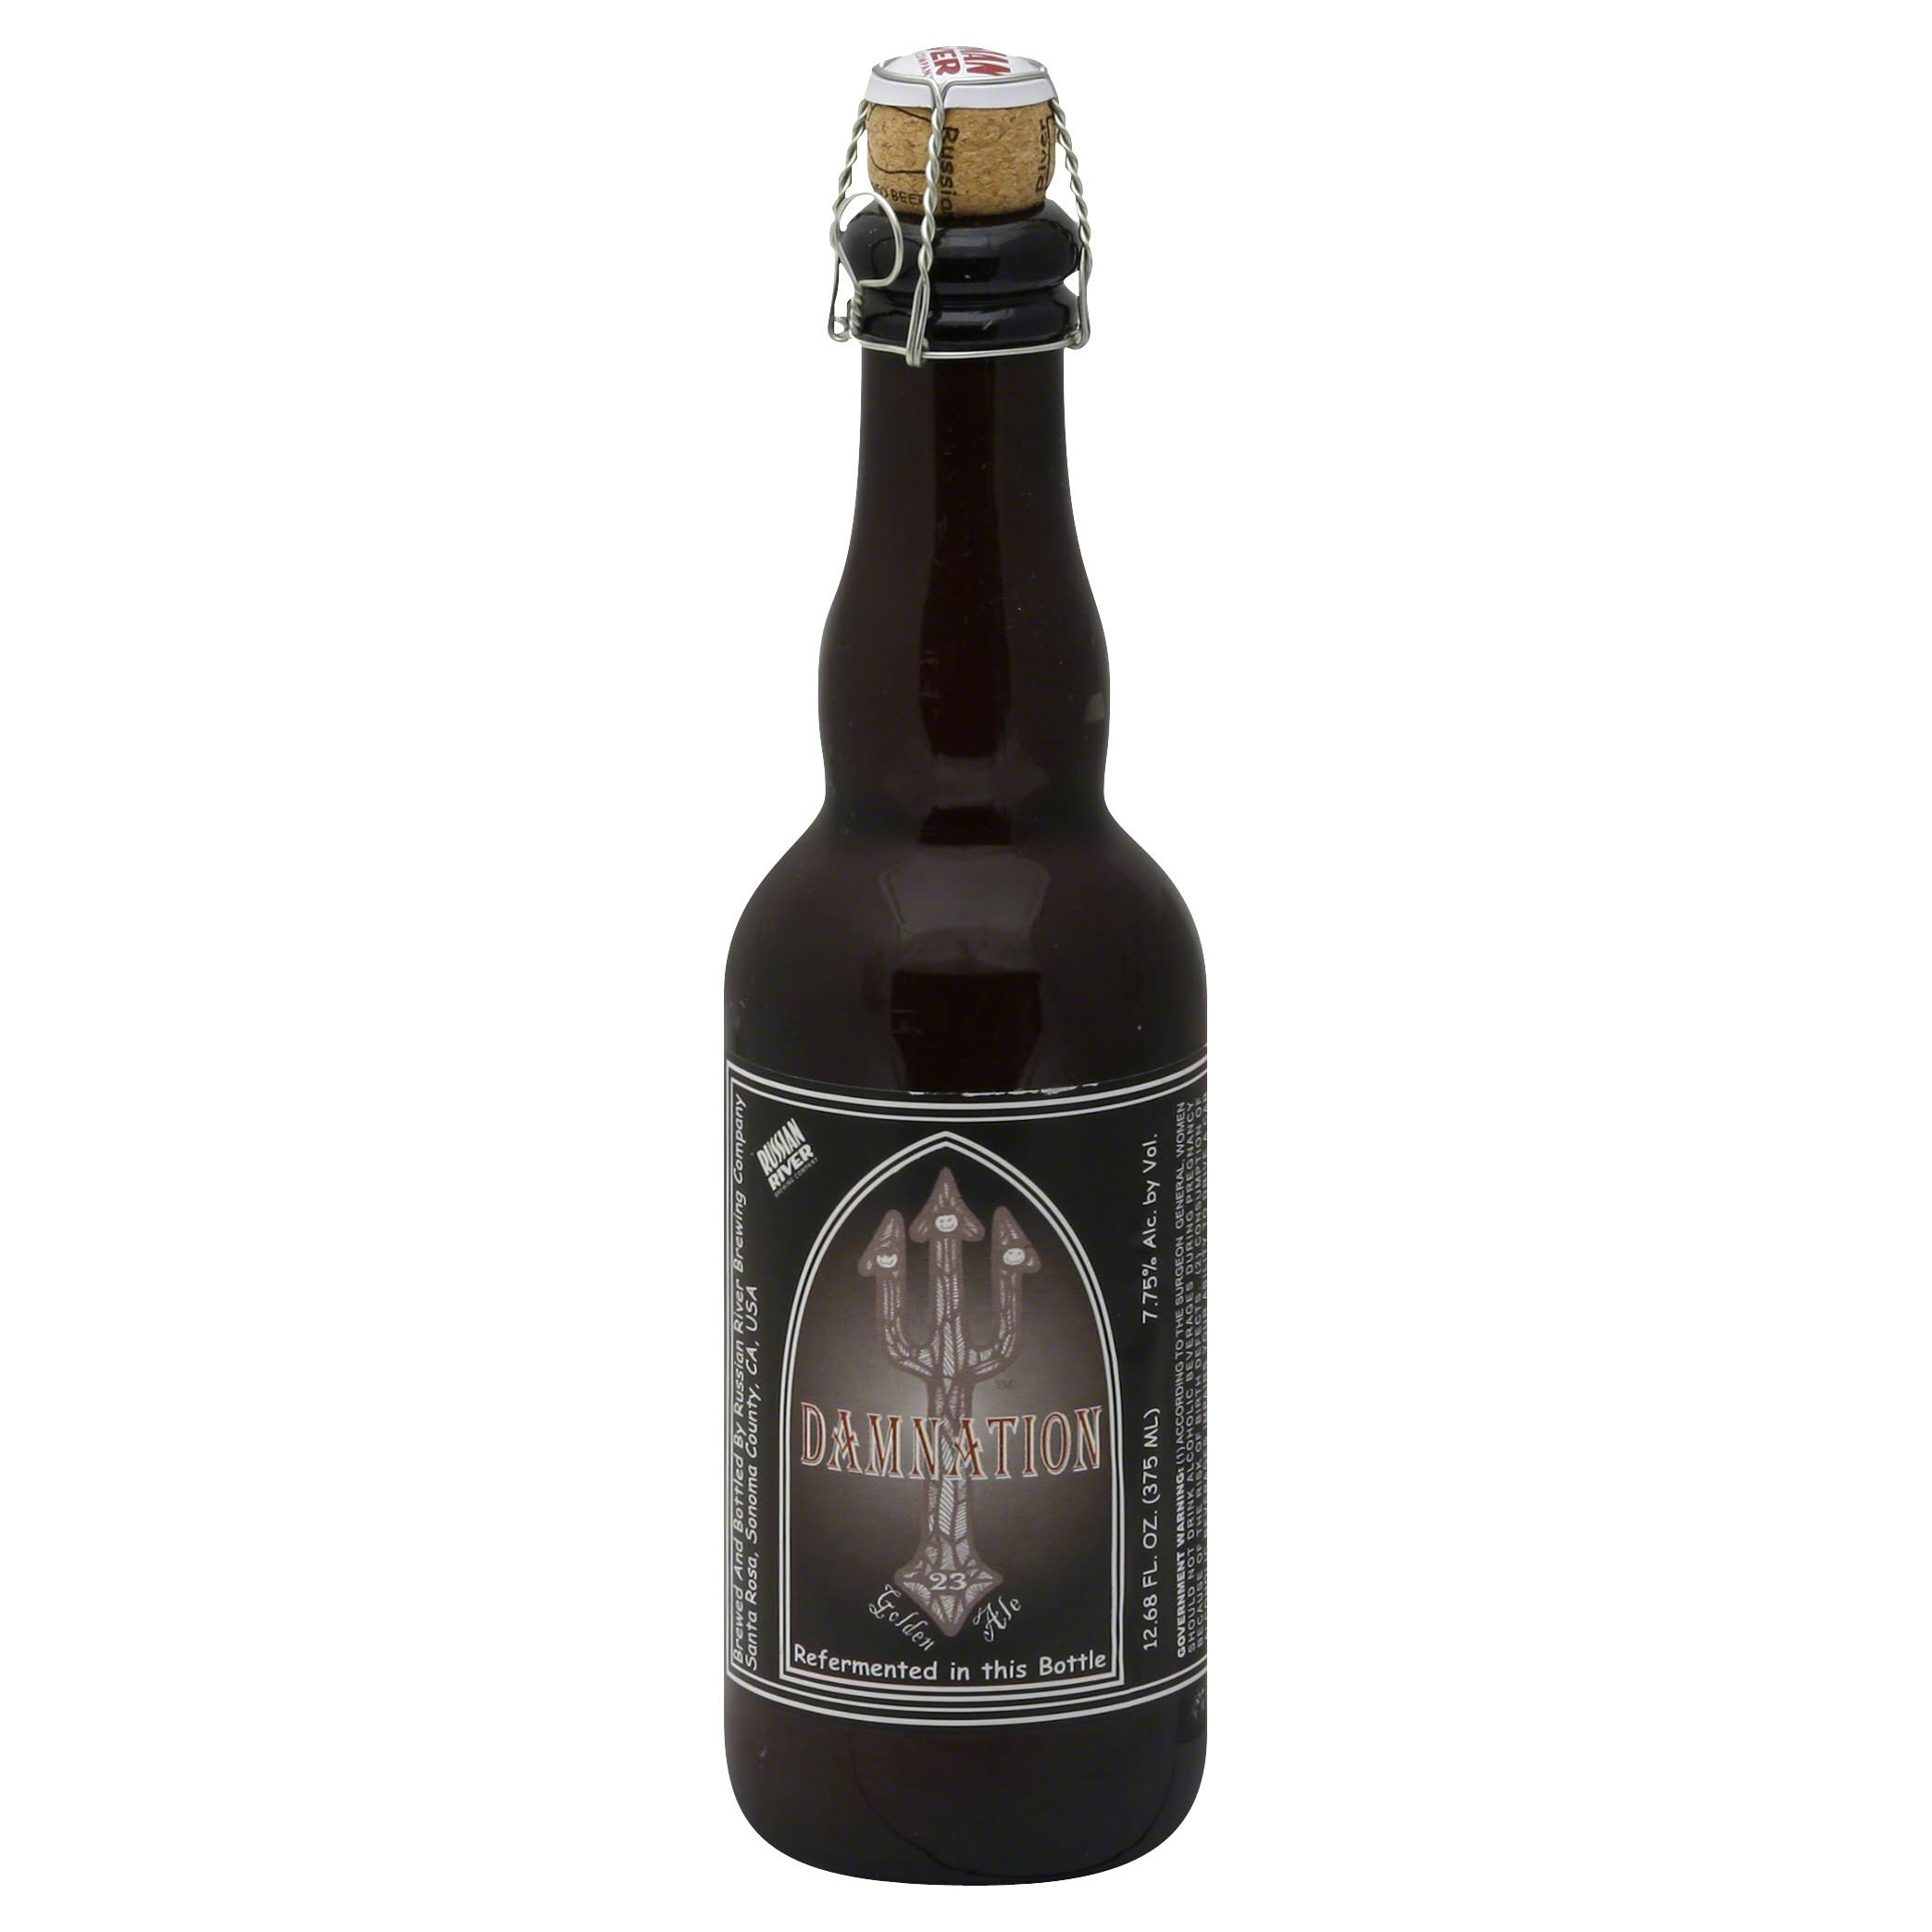 Russian River Ale, Golden - 12.68 fl oz